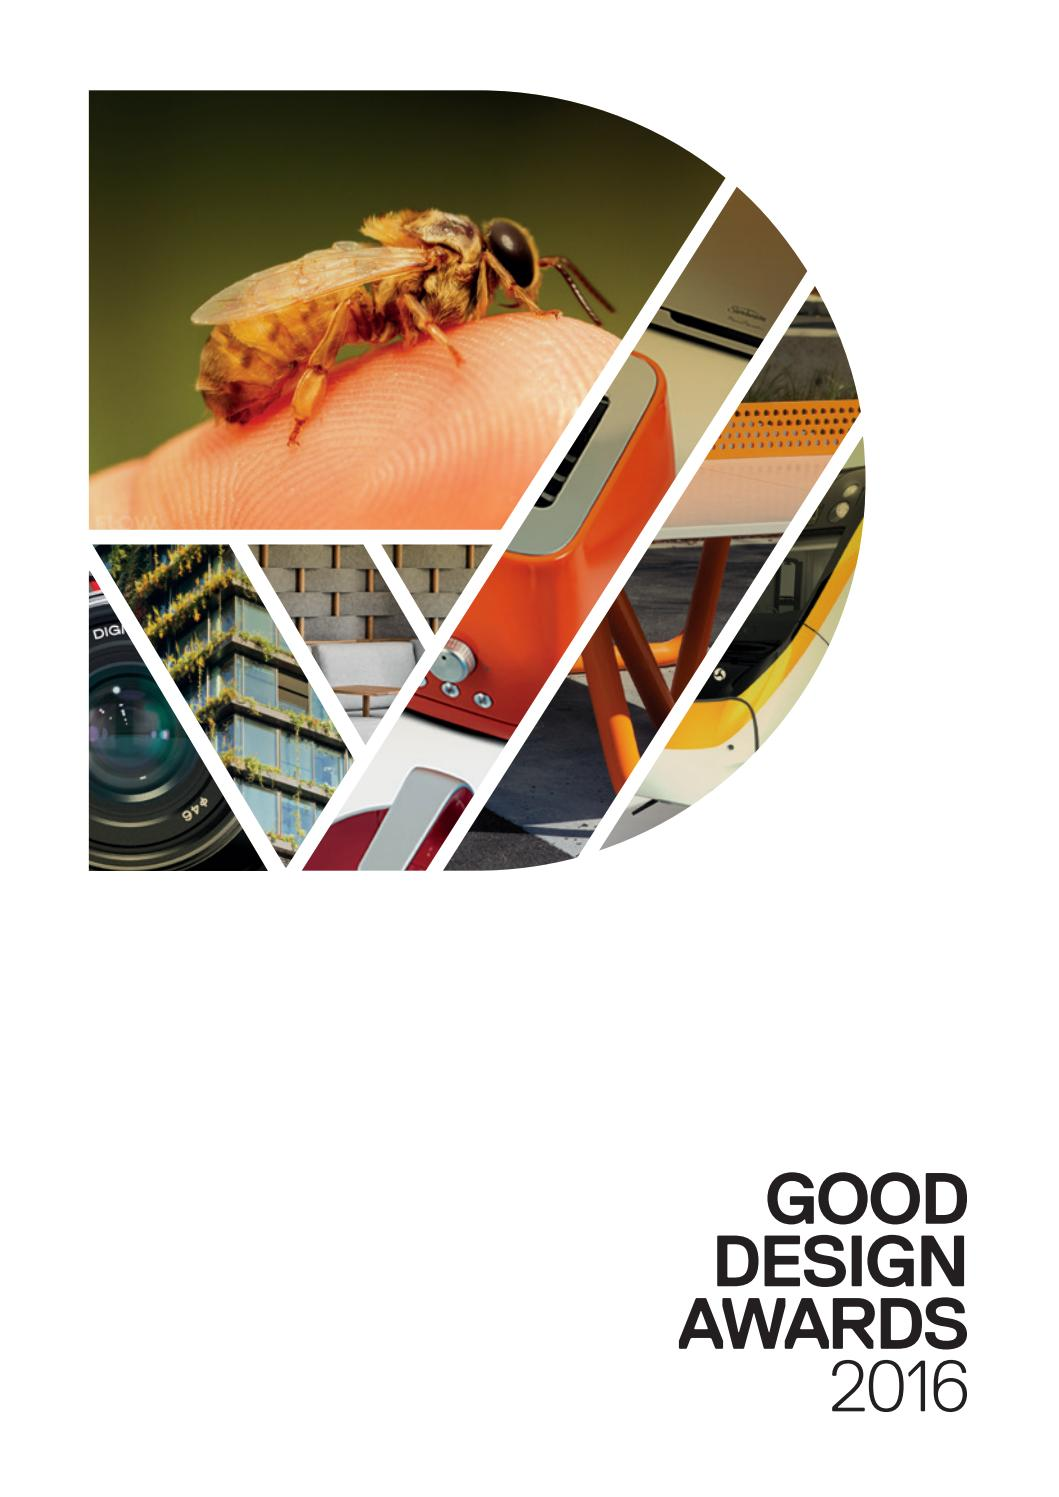 2016 good design awards yearbook by good design australia issuu. Black Bedroom Furniture Sets. Home Design Ideas